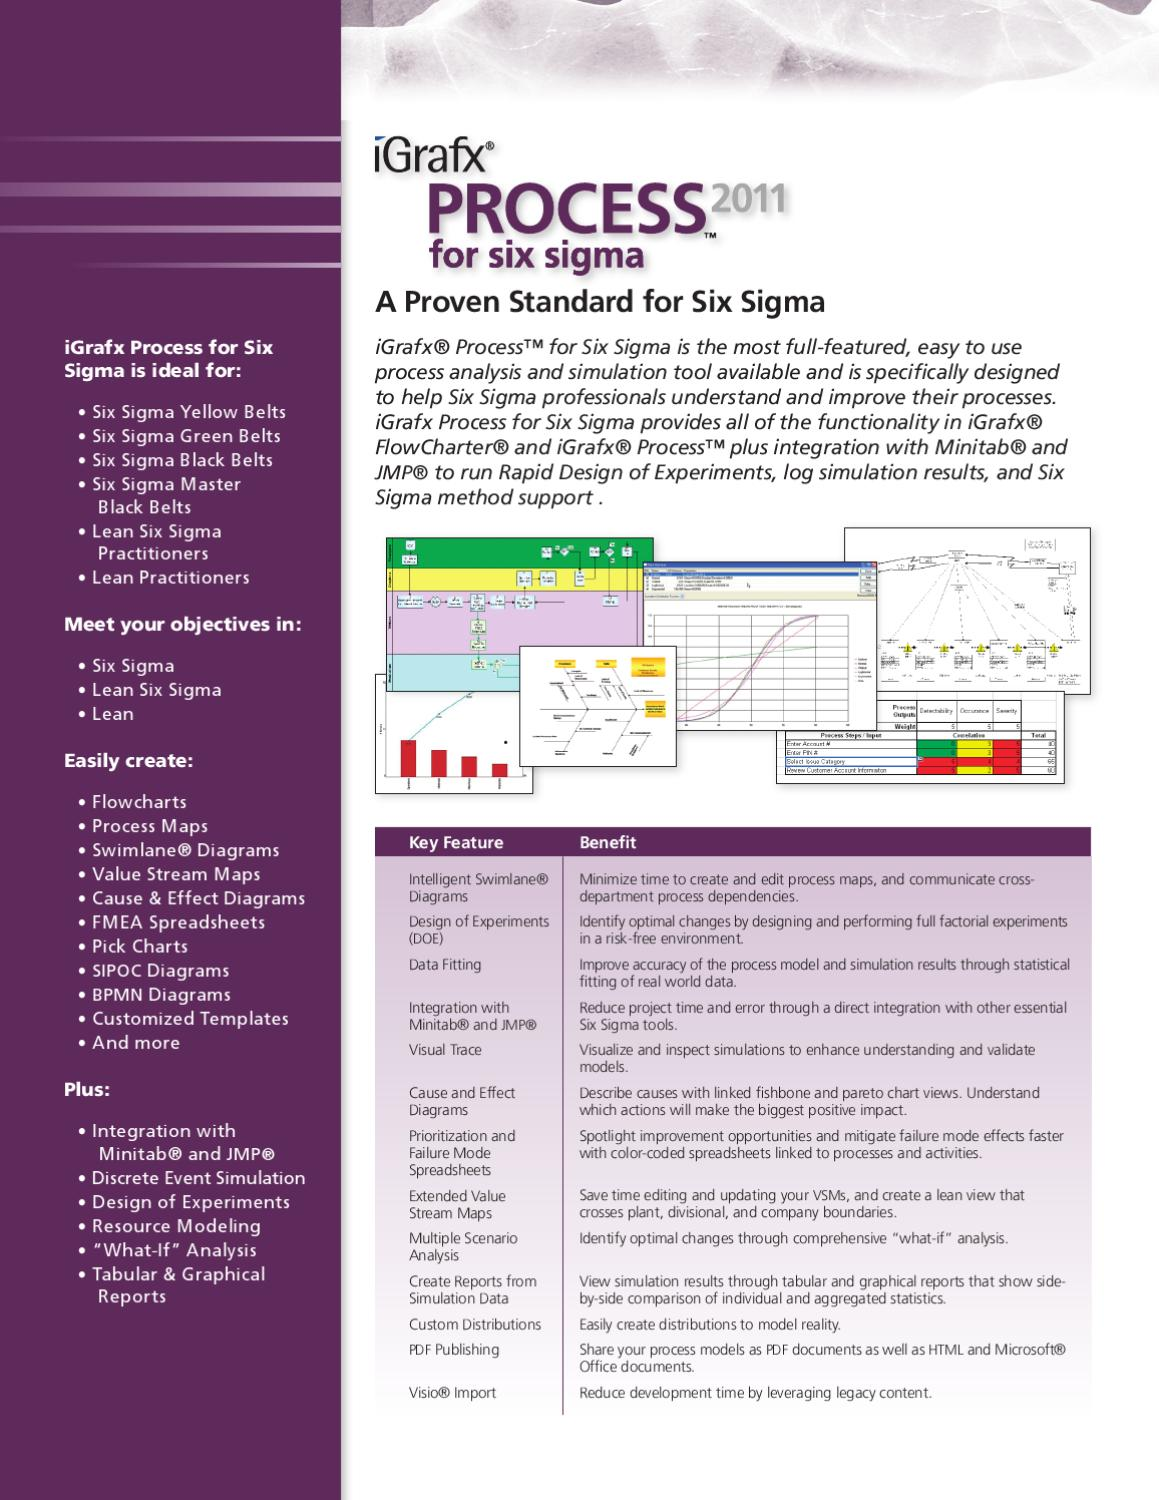 Igrafx Process 2011 For Six Sigma Brochure By Proserv Issuu Flow Diagram